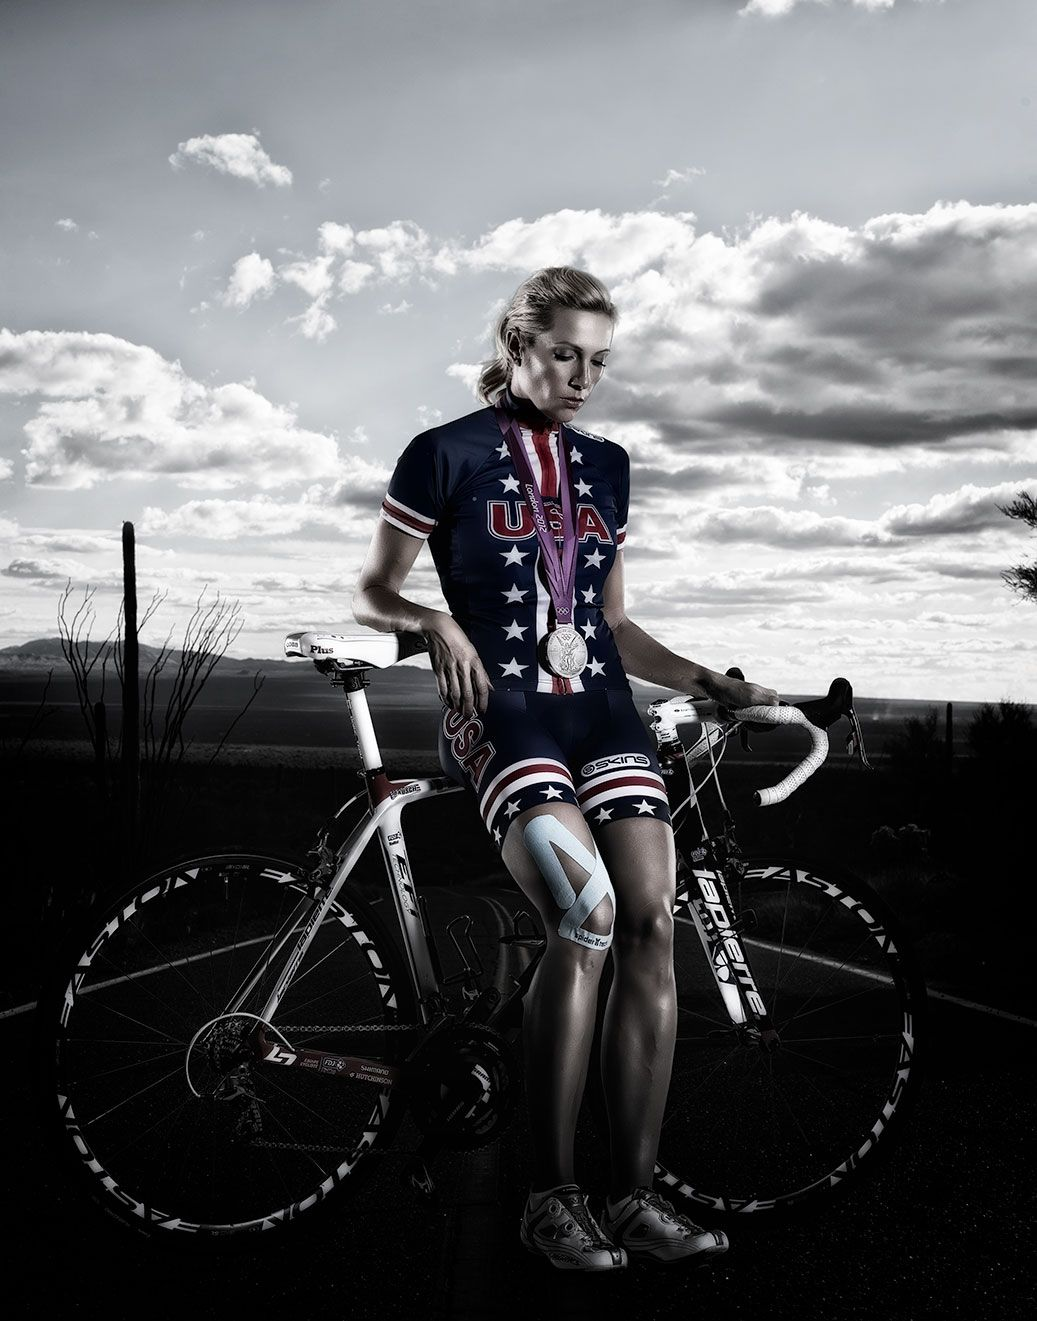 d61976914 2012 Olympic Silver Medalist and seven time USA Cycling National Champion  Dotsie Bausch sports SpiderTech at a photo shoot